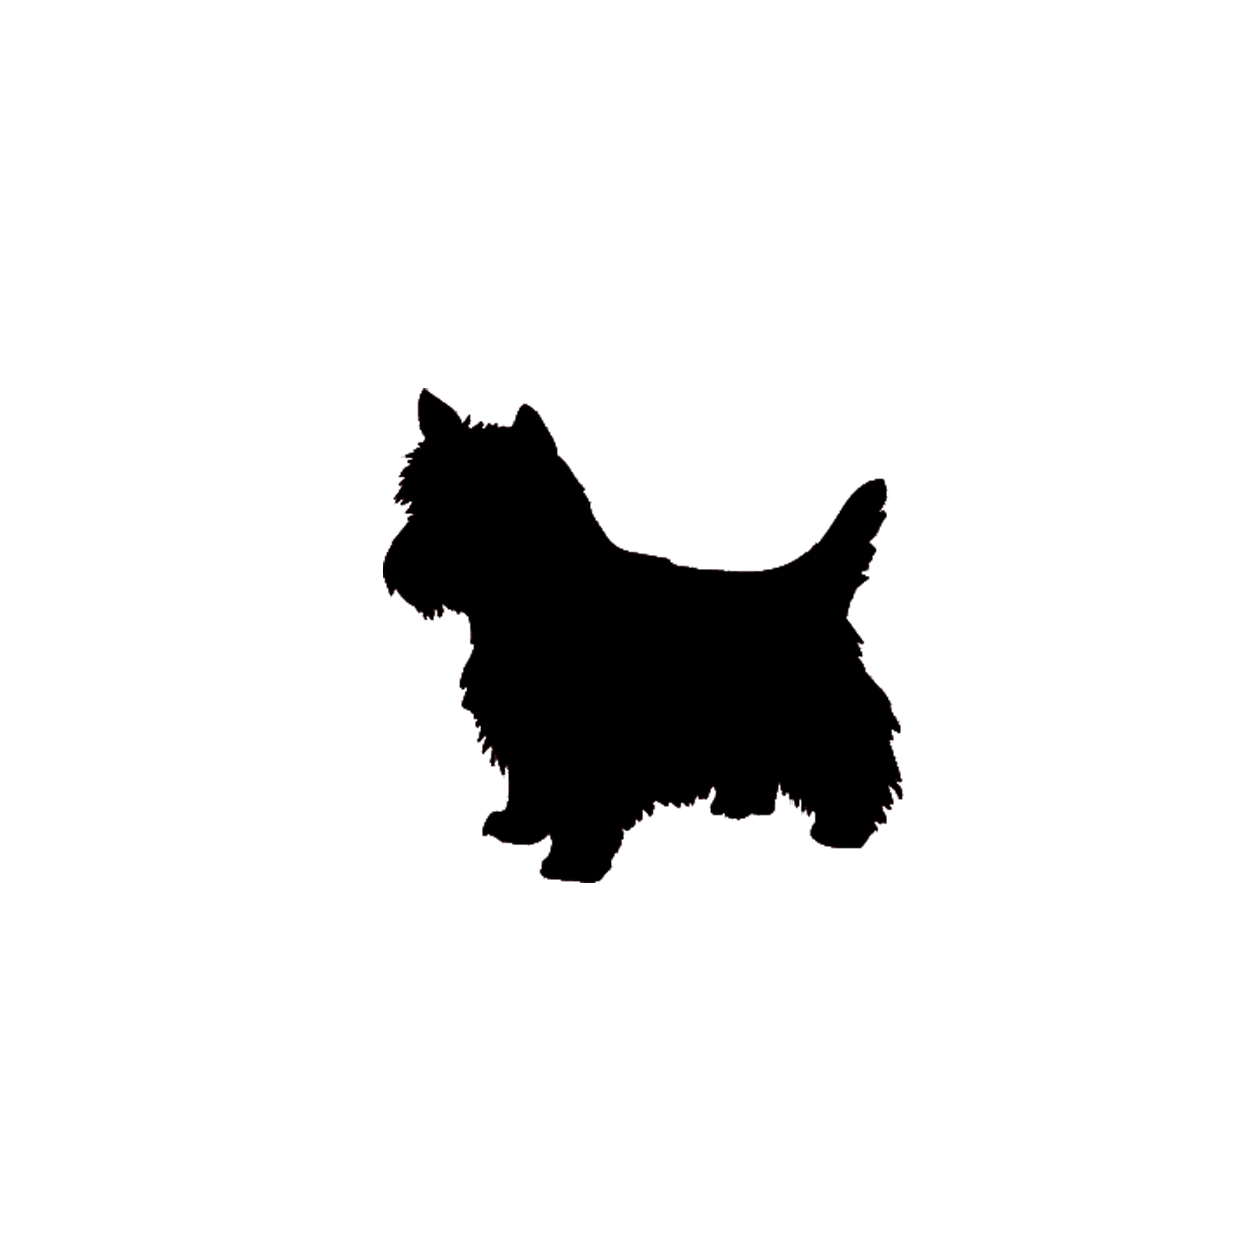 14 Small Pets Silhouettes Vector Images